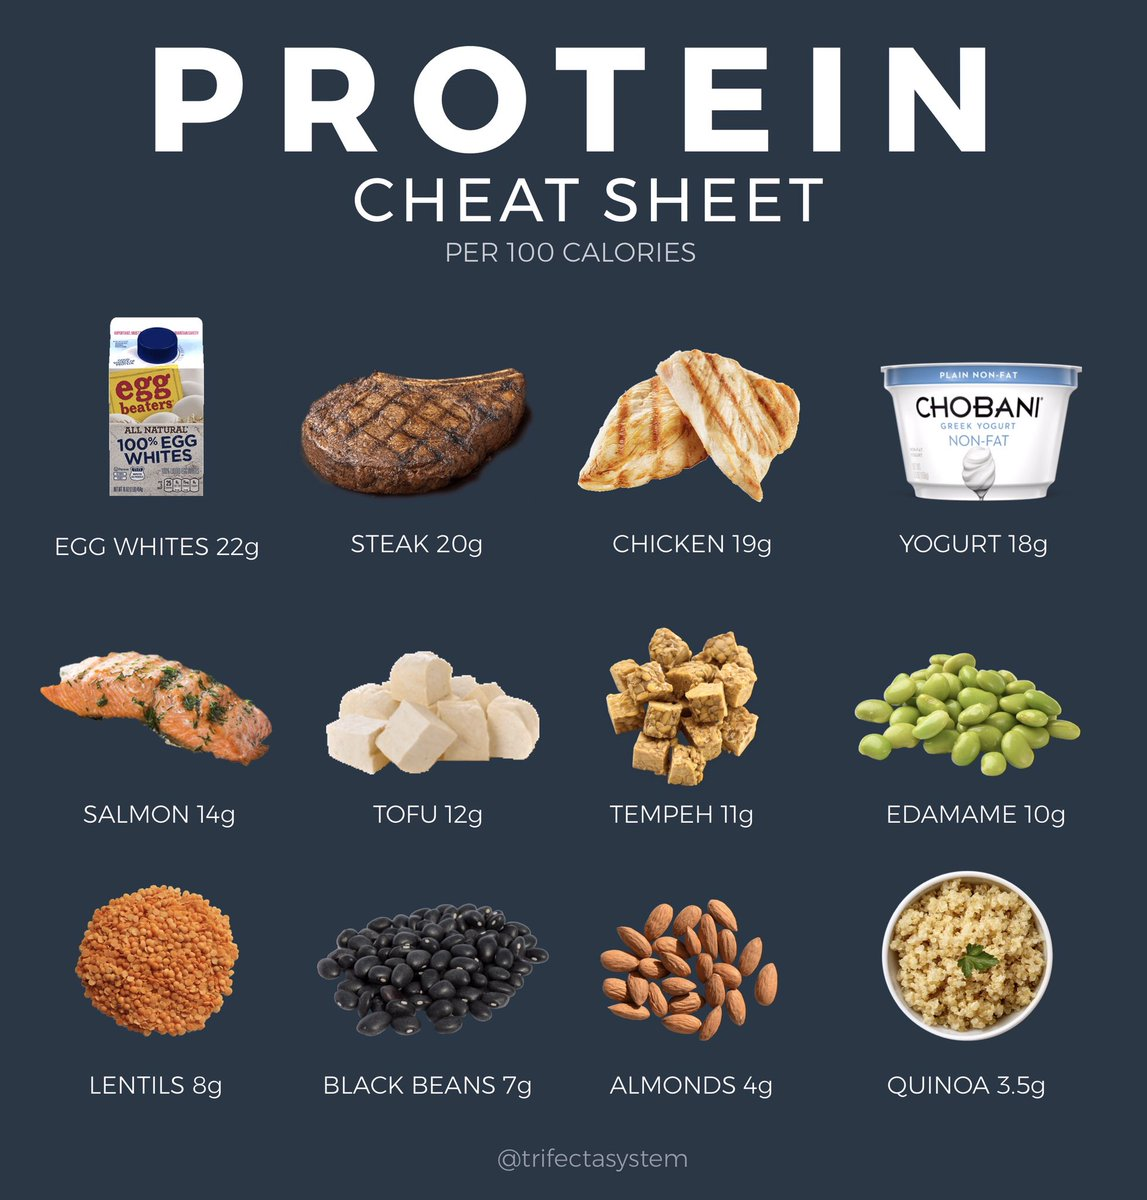 PROTEIN CHEAT SHEET!   Since protein is the most important macronutrient (and arguably the hardest to hit), this sheet gives a breakdown of the most protein dense items per 100 calories.   #protein #weightlosstips #fatlosstips   Learn more: https://www.trifectanutrition.com/blog/how-much-protein-do-i-need-and-what-are-the-best-sources-of-protein…